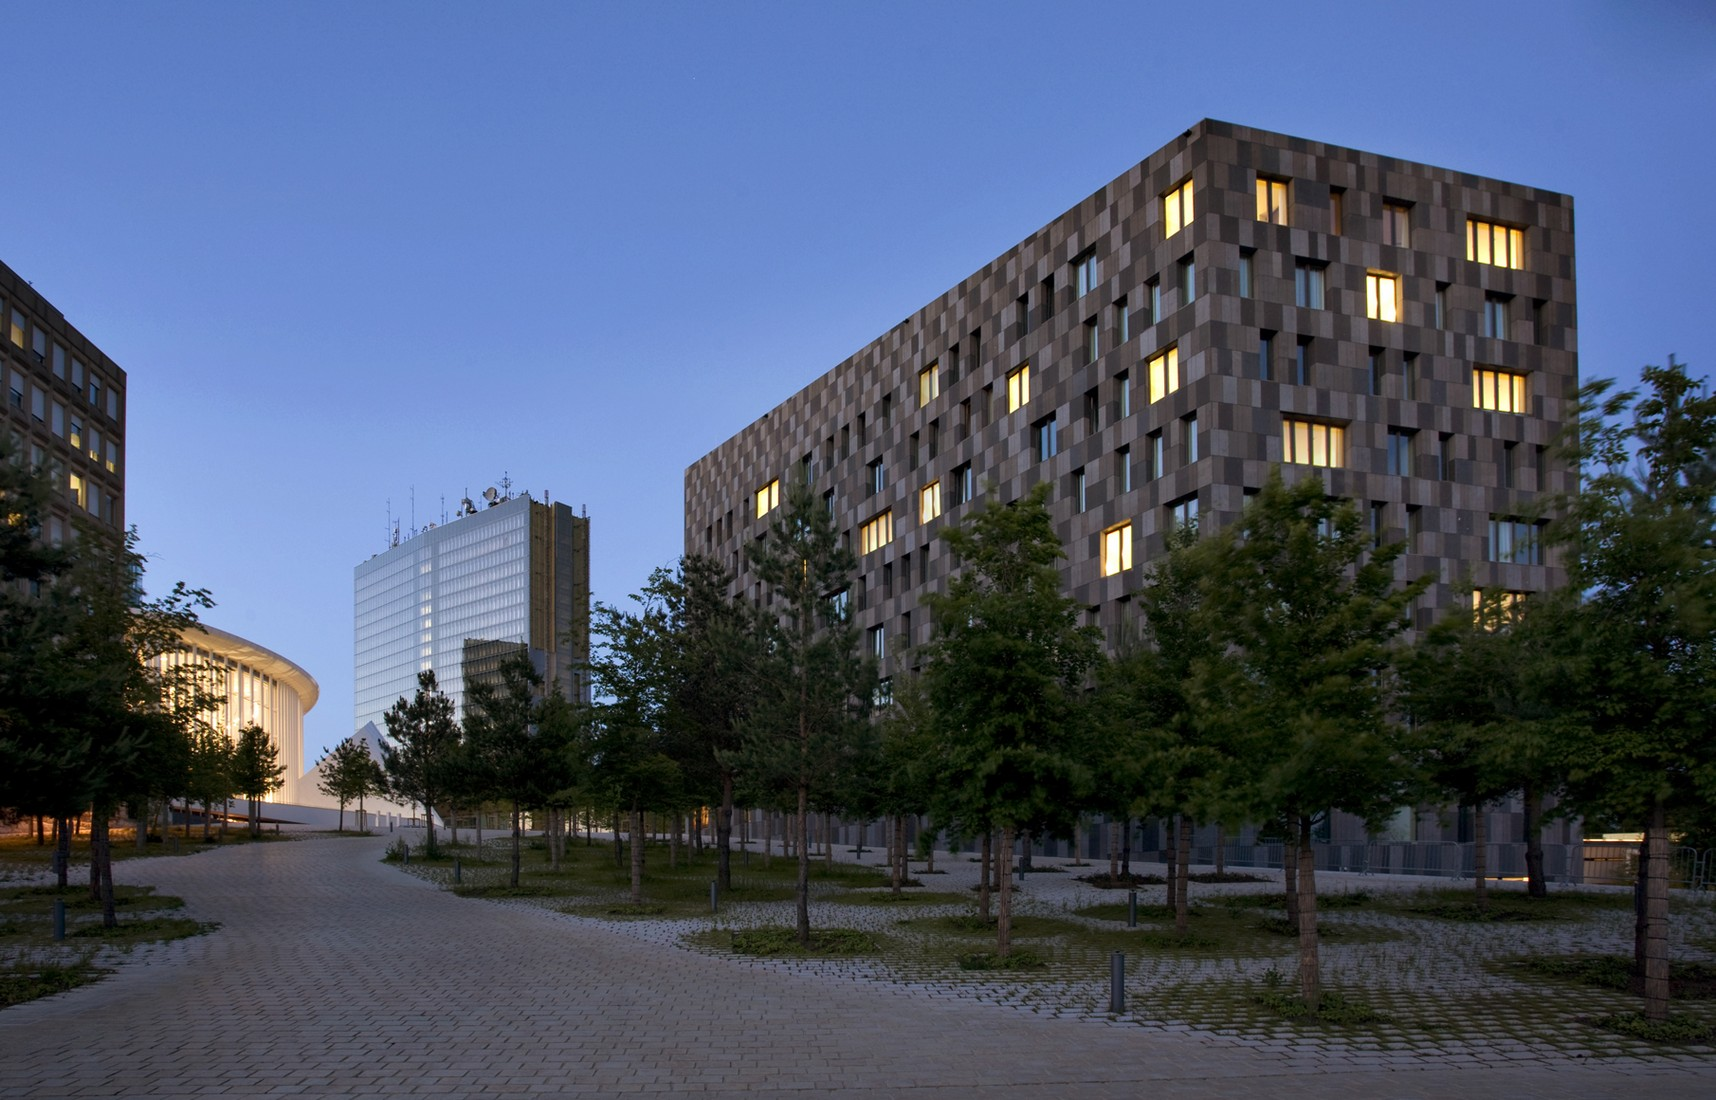 Hotel melia luxembourg atelier darchitecture jim clemes media